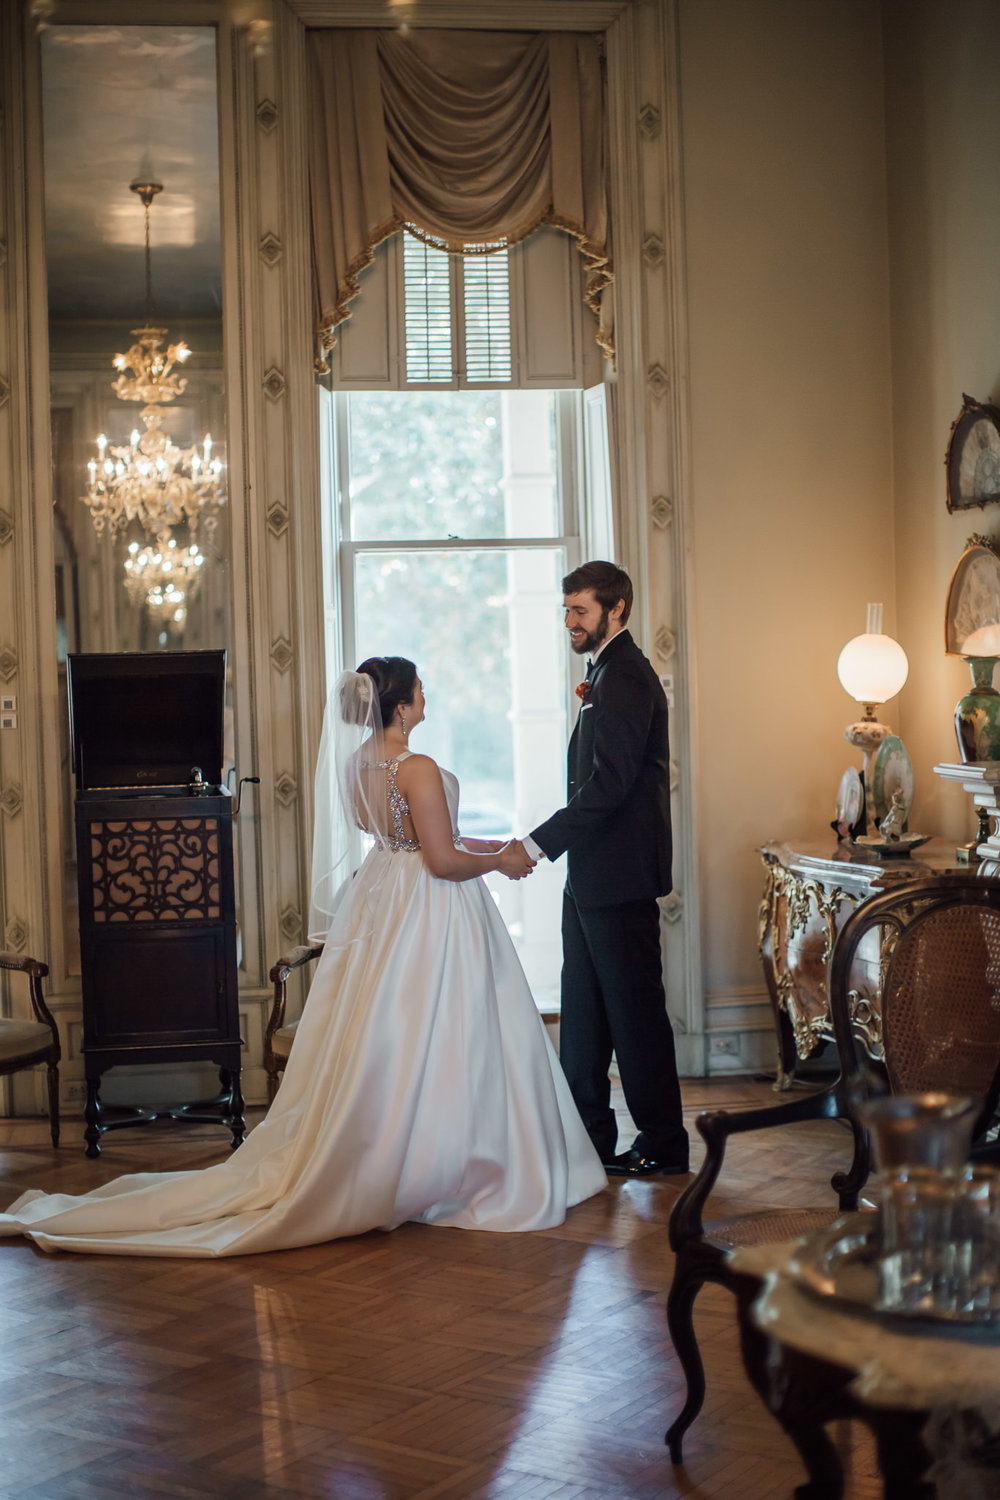 blog-cassie-cook-photography-woodruff-fontain-house-memphis-wedding-venue-5-2.jpg